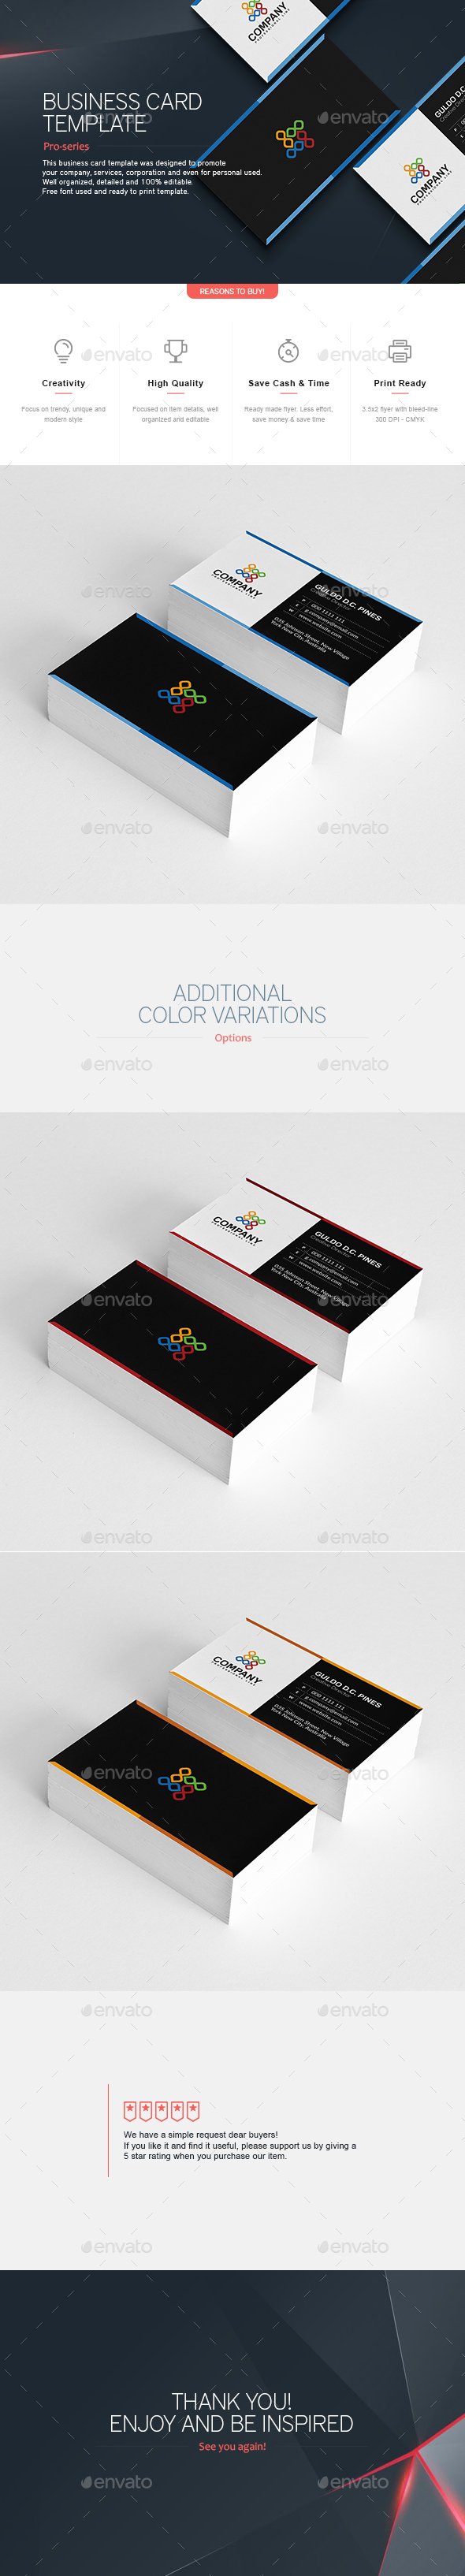 Business Card 19 - Corporate Business Cards